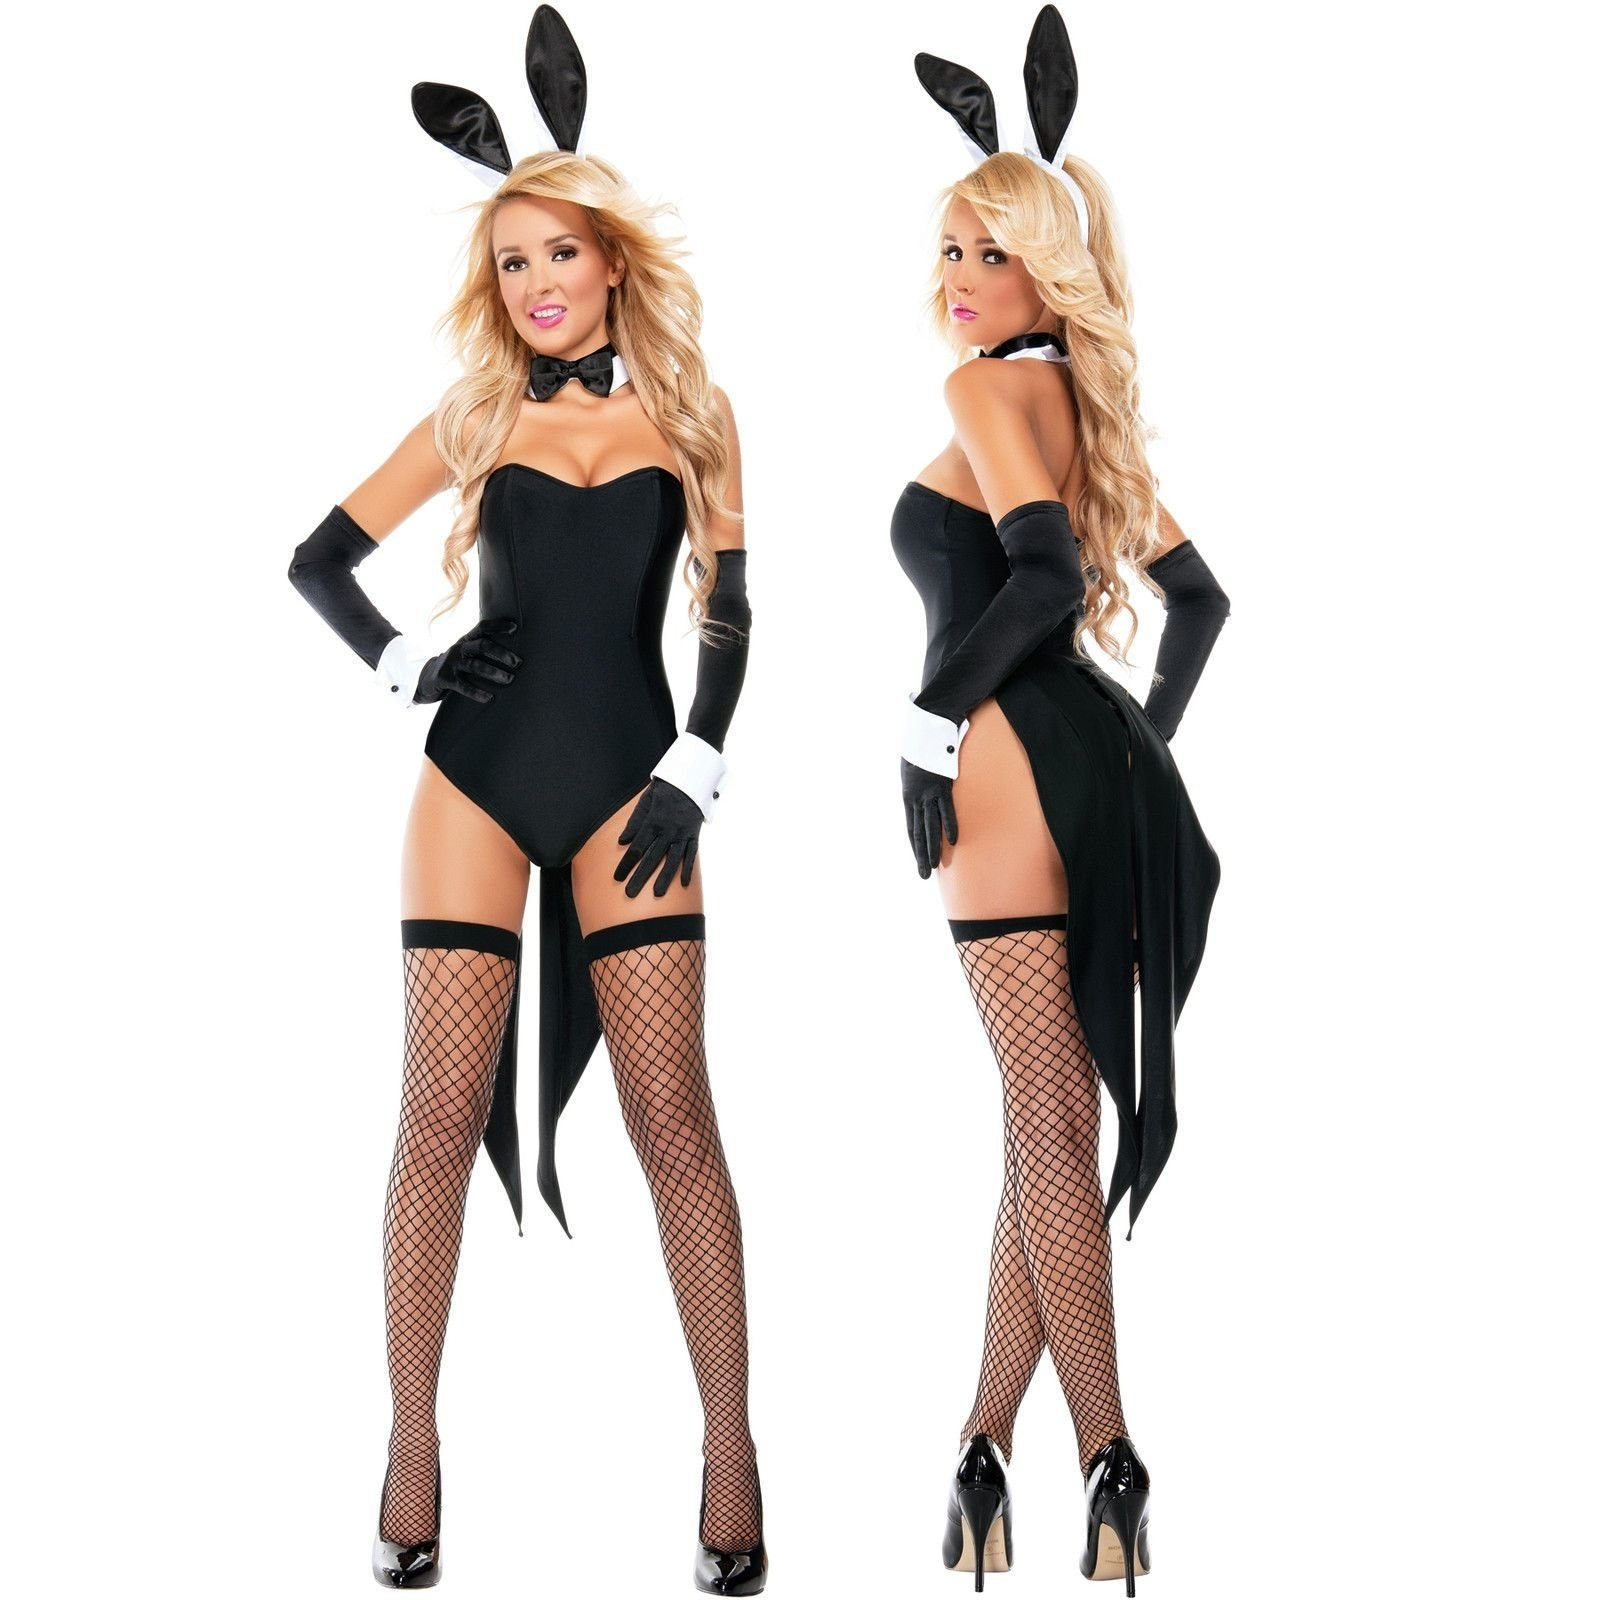 10 Wonderful Cheap Sexy Halloween Costume Ideas sexy womens fairytale disney lola bunny tuxedo playboy hottie 2020